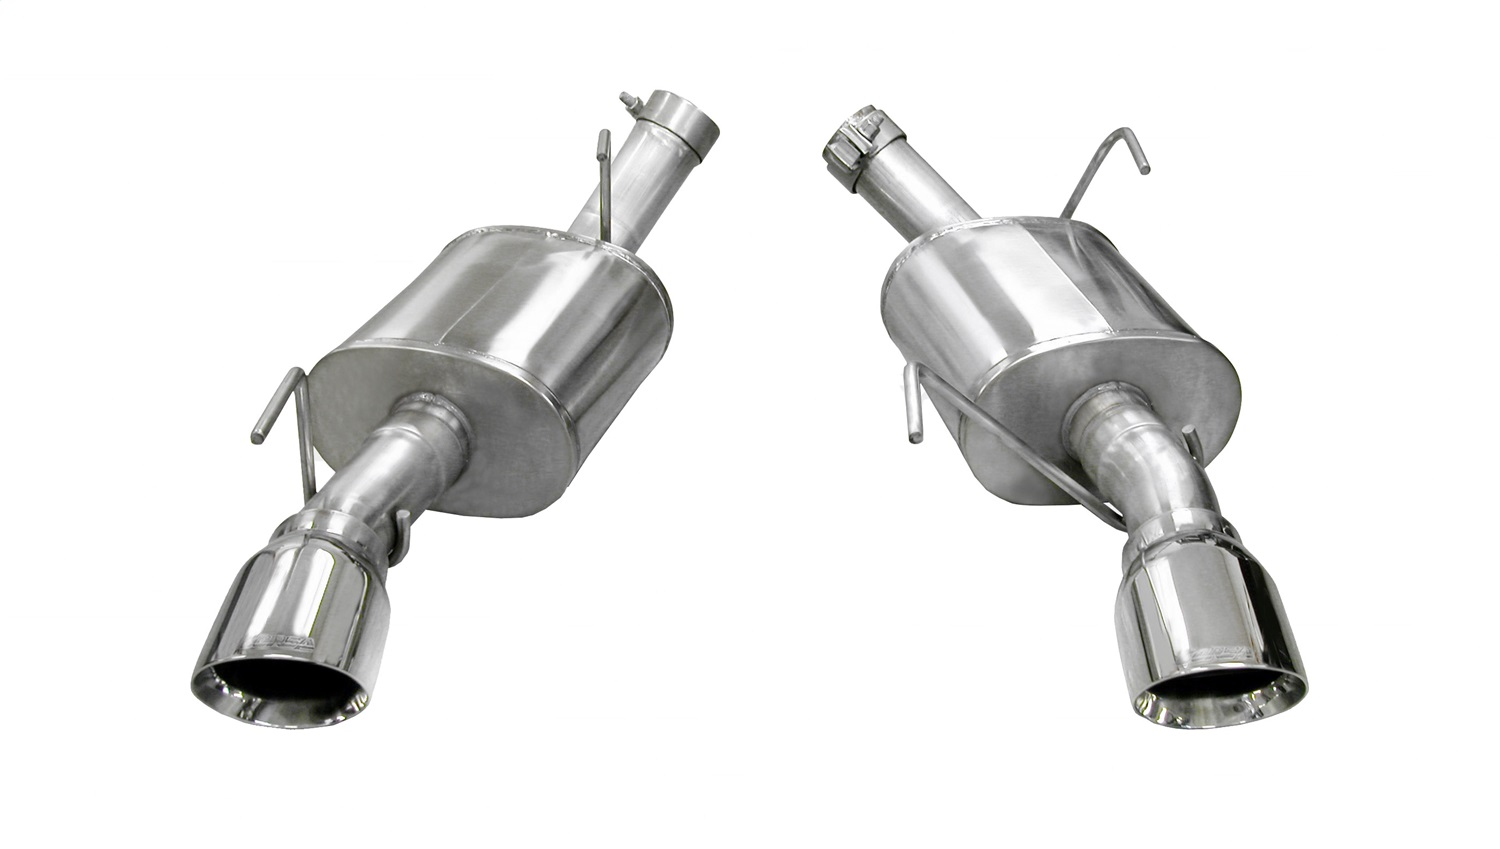 Corsa Performance 14314 Xtreme Axle-Back Exhaust System Fits 05-10 Mustang